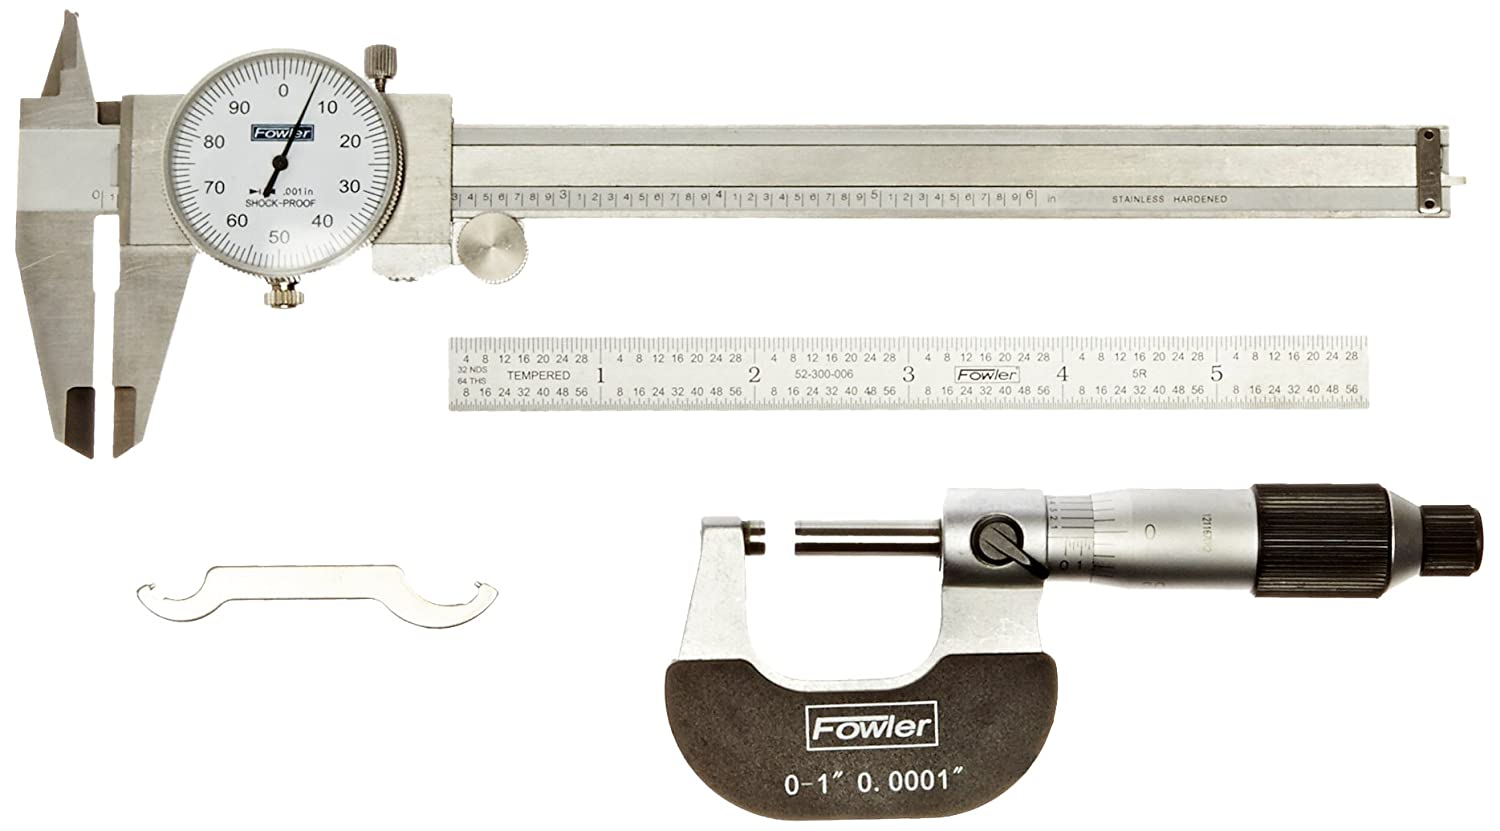 "Fowler 52-095-007 Toolmakers Universal Measuring Set, 6"" Dial Caliper, 6"" Flexible Rule, Micrometer 6"" Dial Caliper 6"" Flexible Rule Fred V. Fowler Company Inc."